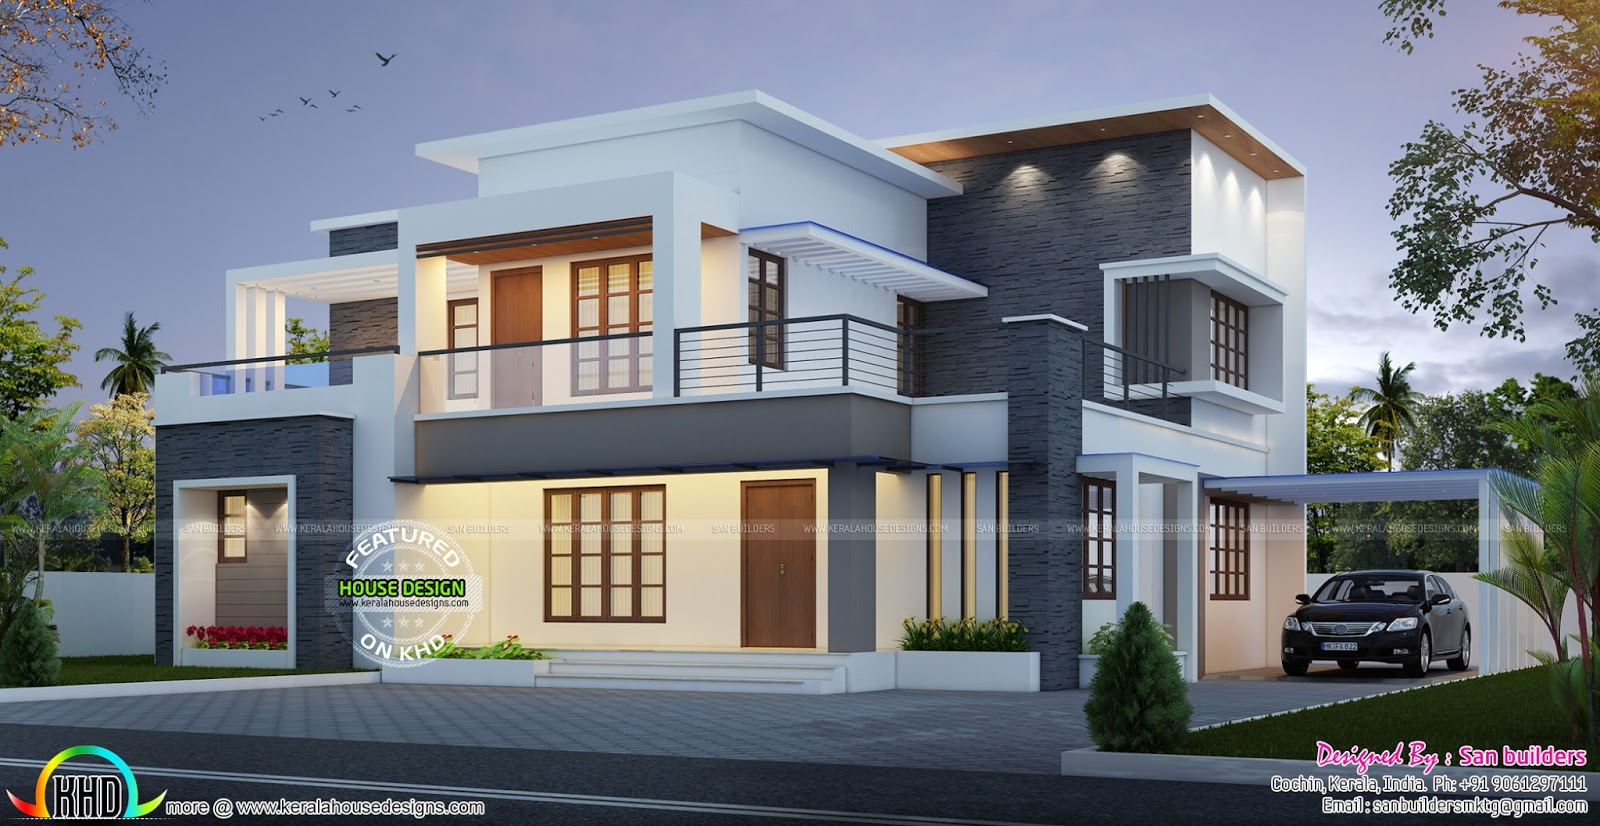 Elevation Designs For Ground Floor Building : House plan and elevation by san builders kerala home